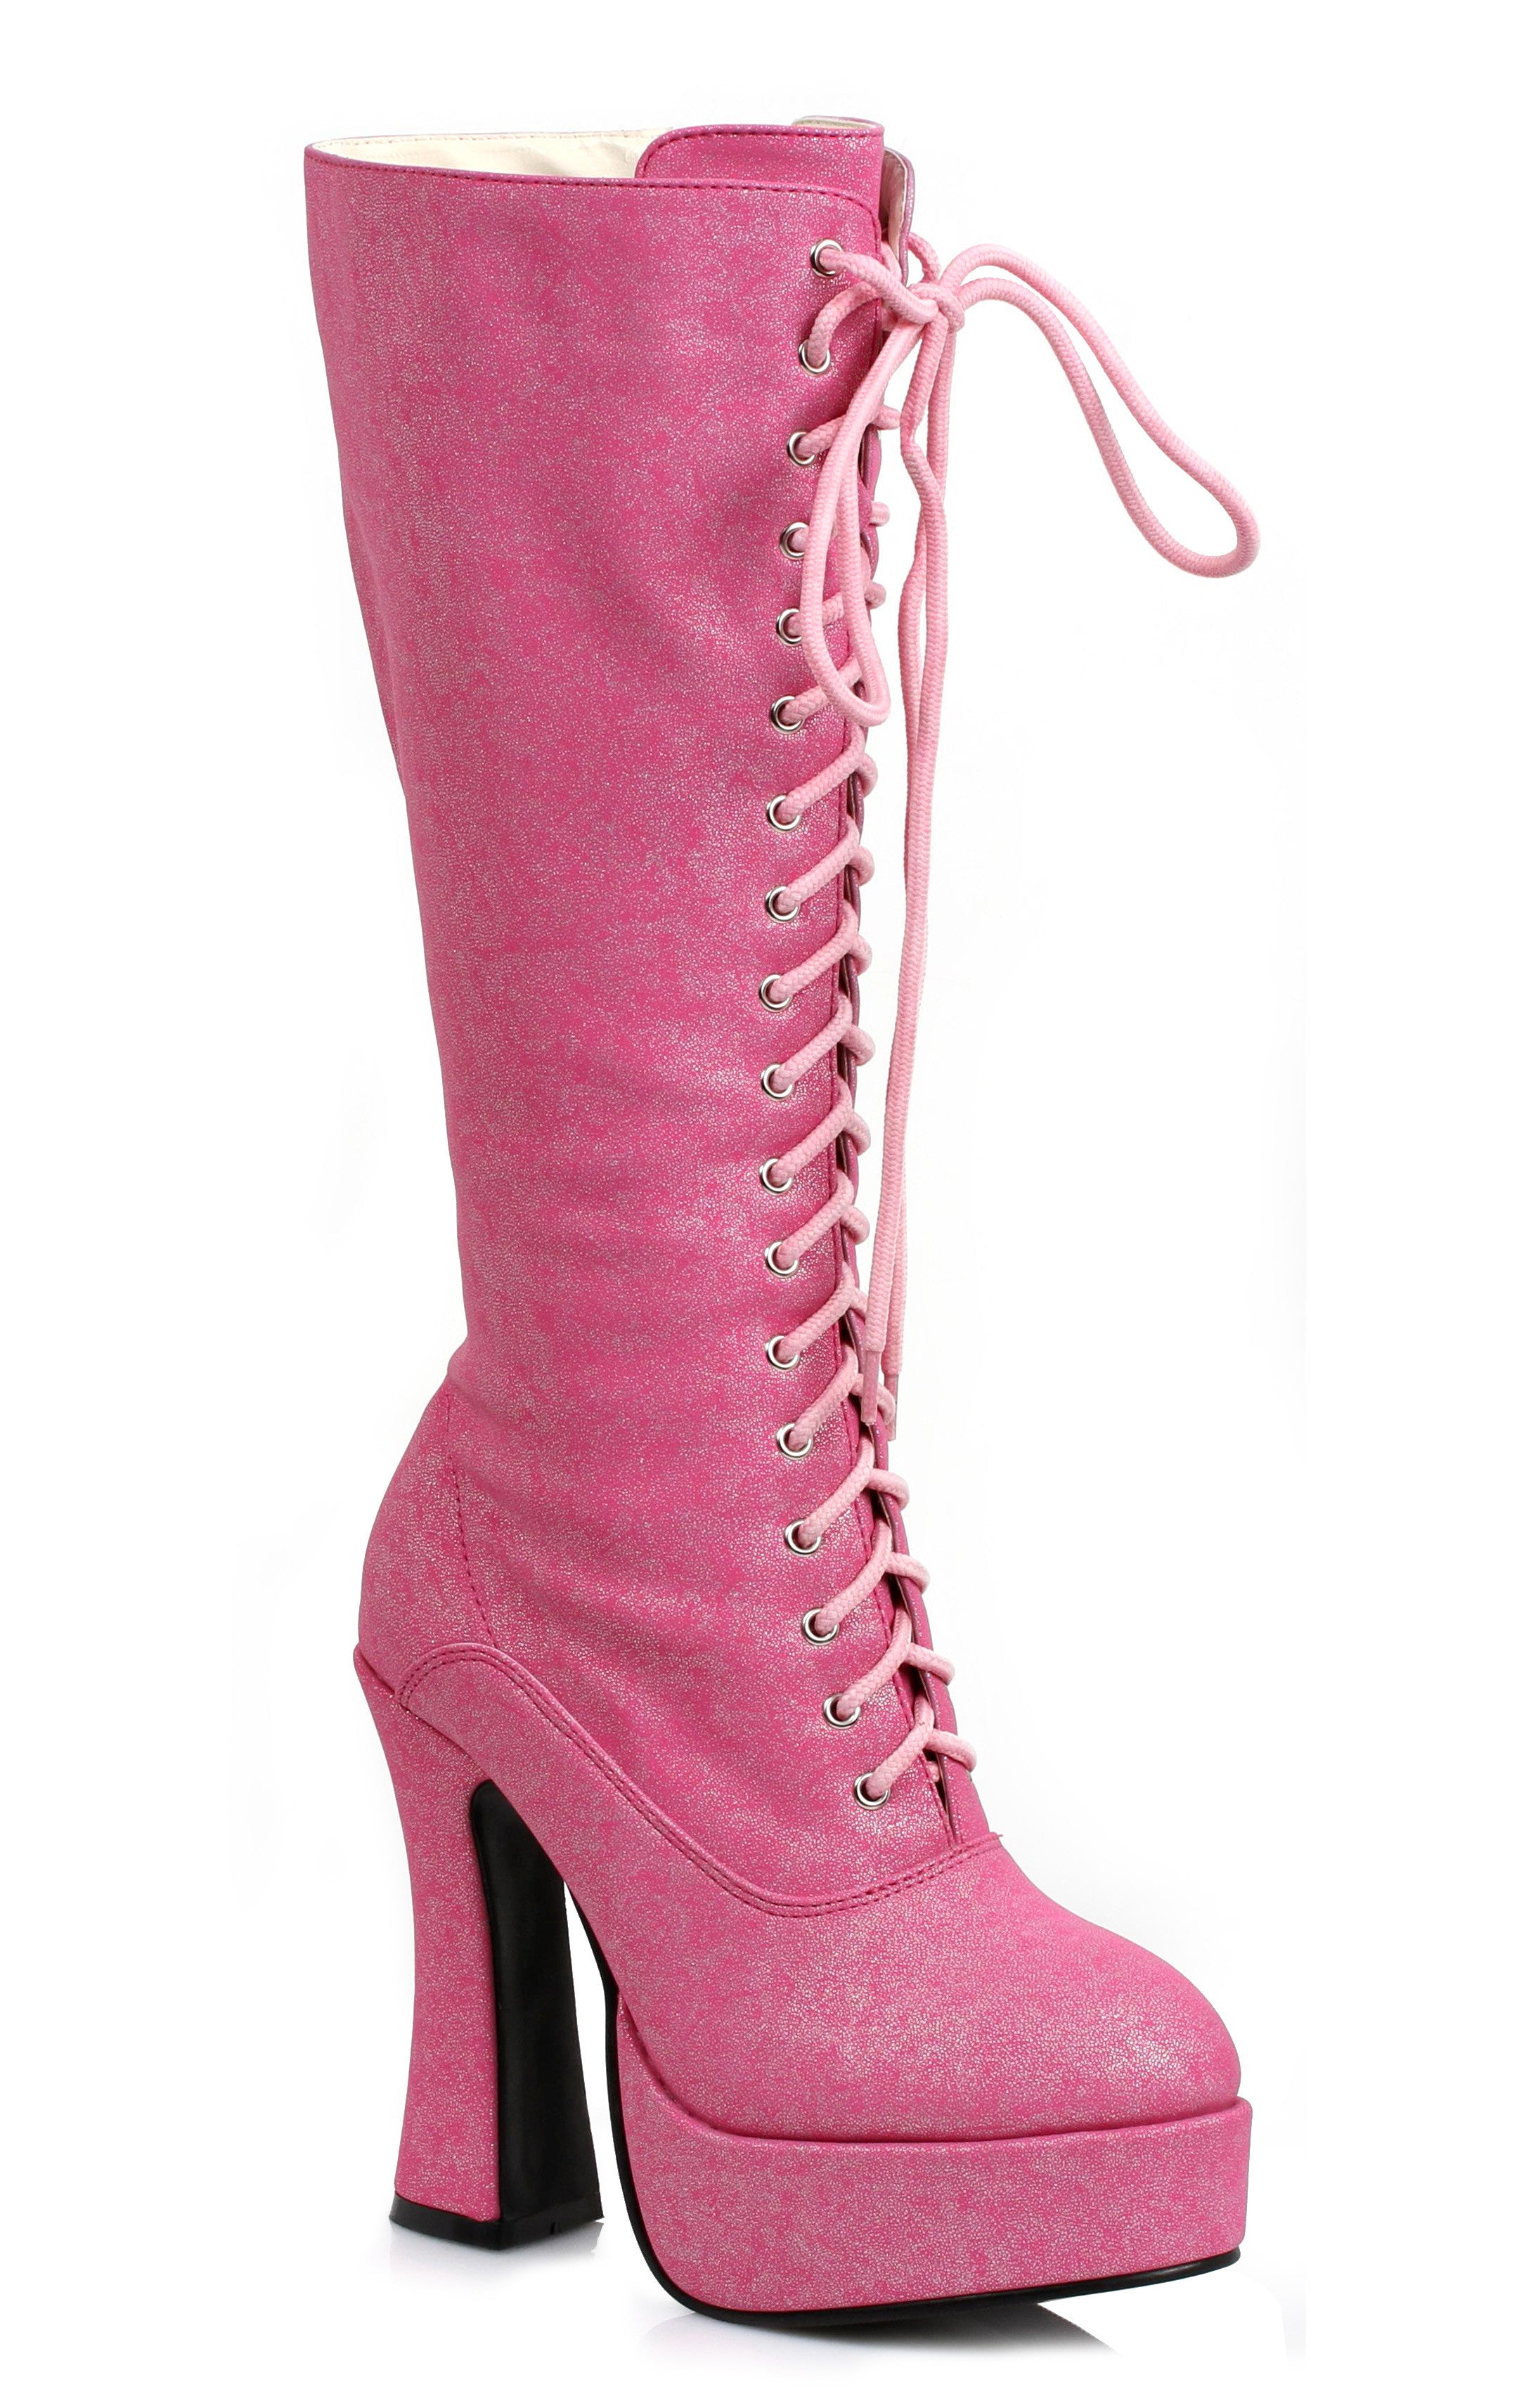 5 INCH SHIMMER LACE UP BOOT